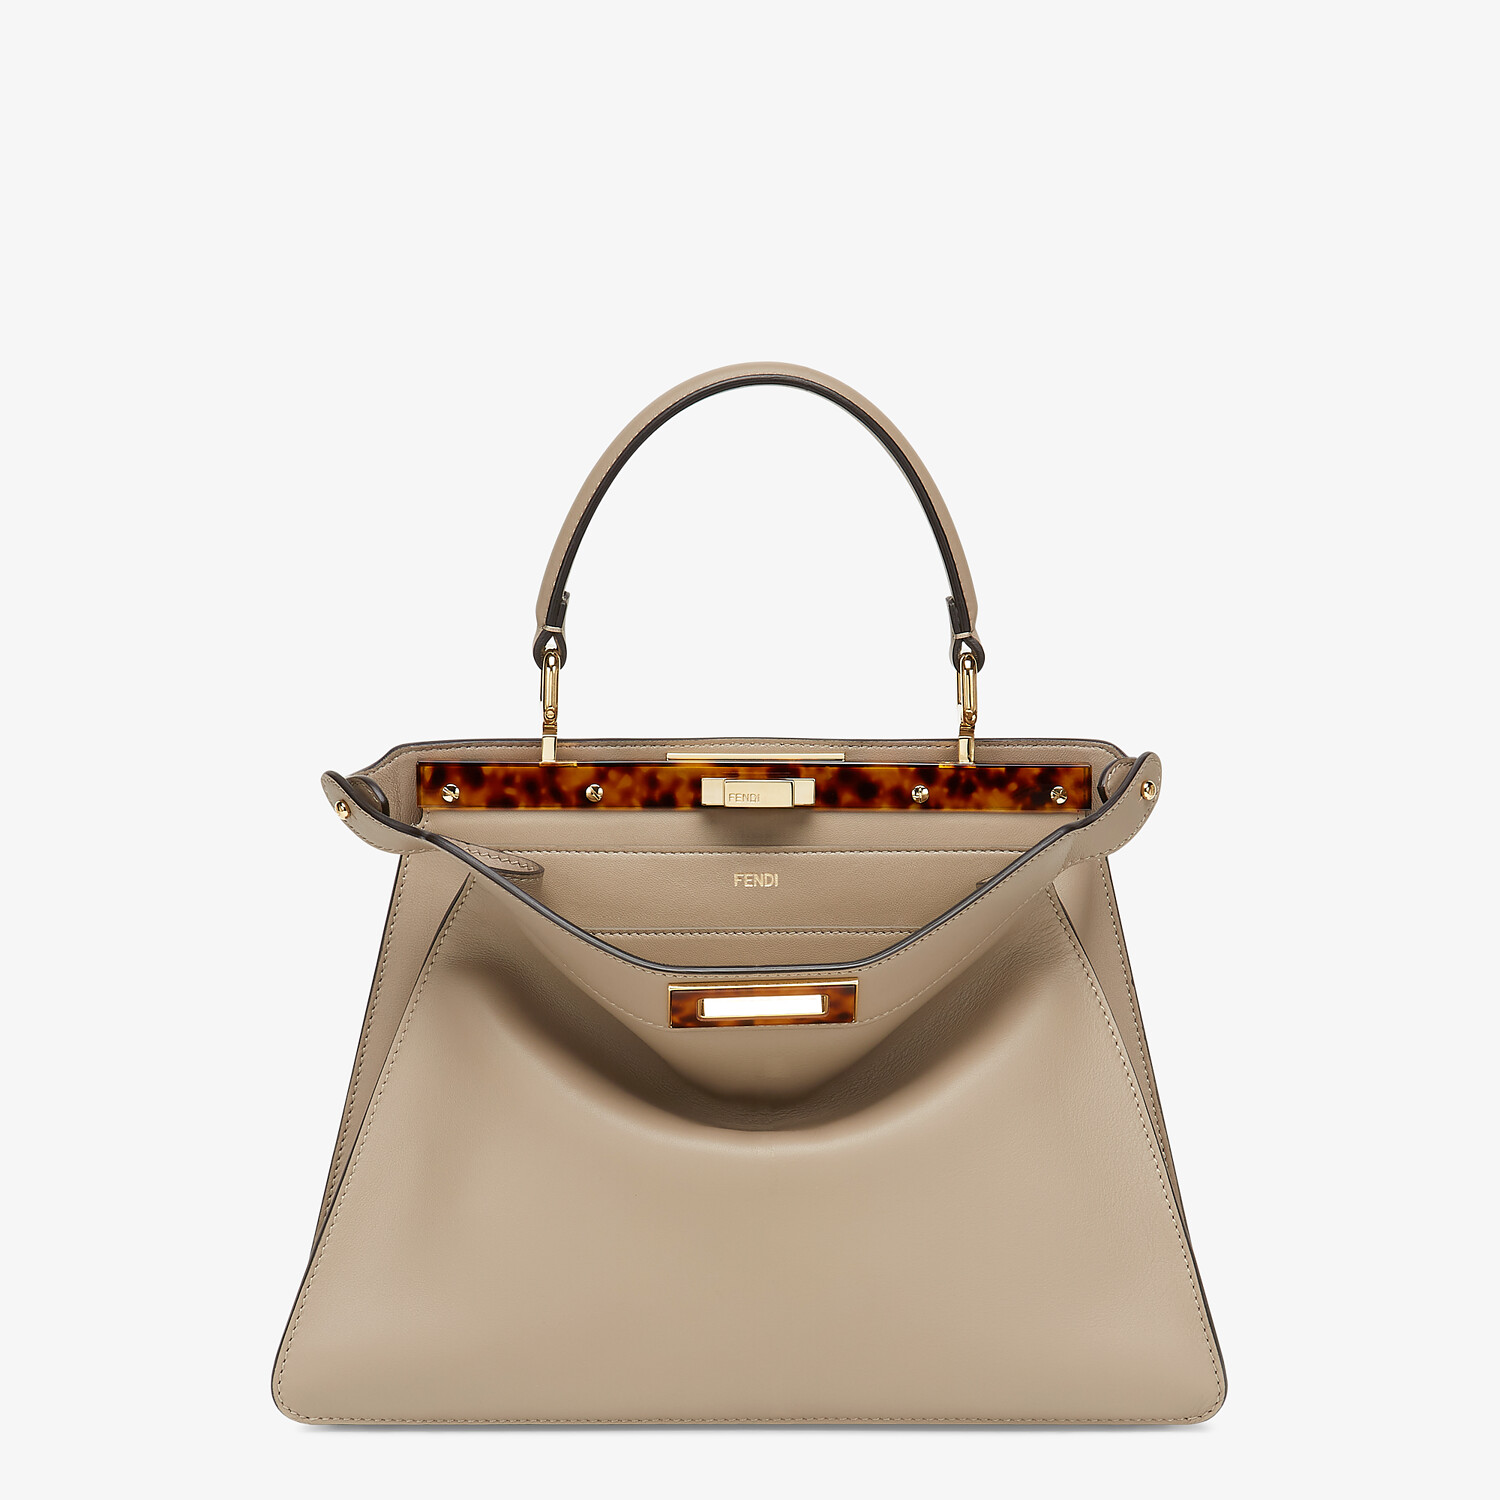 FENDI PEEKABOO ISEEU MEDIUM - gray leather bag - view 1 detail